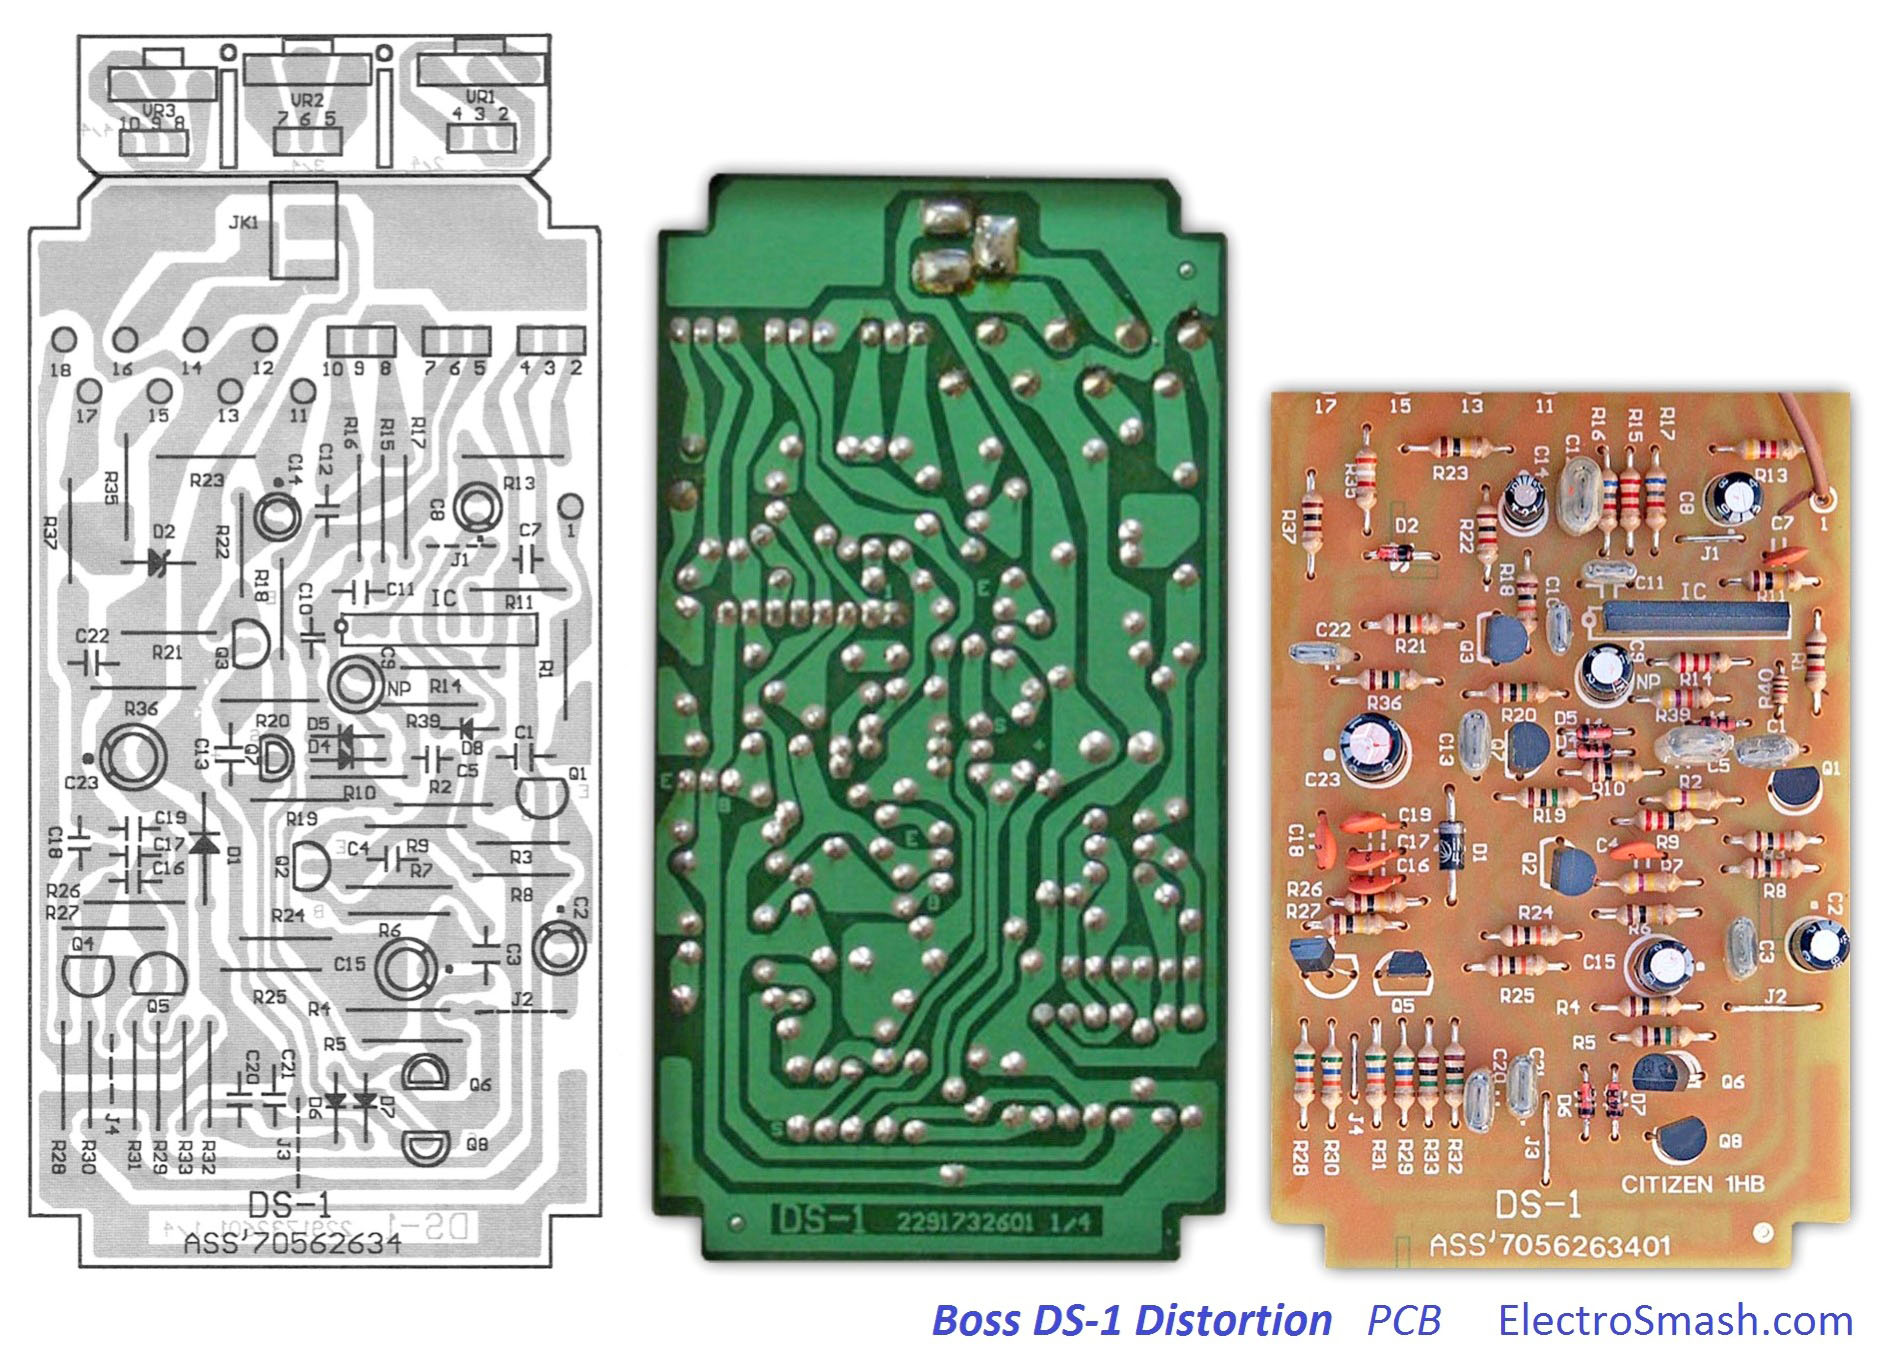 Electrosmash Boss Ds1 Distortion Analysis 2n2907 In The Reverse Unit Project Schematic Circuit Diagram And Datasheet Pcb Small